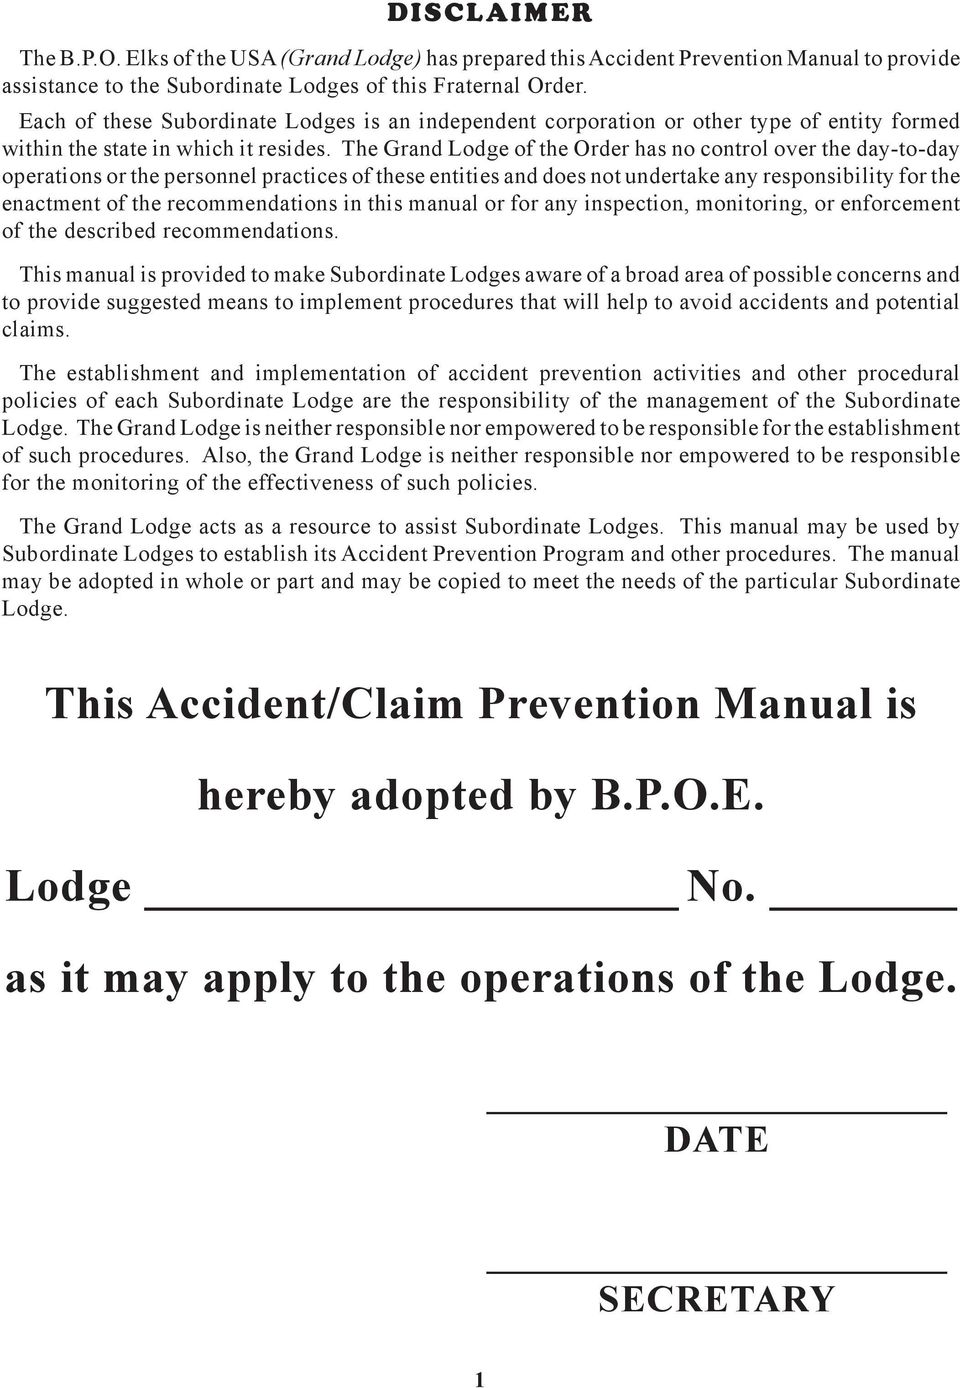 The Grand Lodge of the Order has no control over the day-to-day operations or the personnel practices of these entities and does not undertake any responsibility for the enactment of the